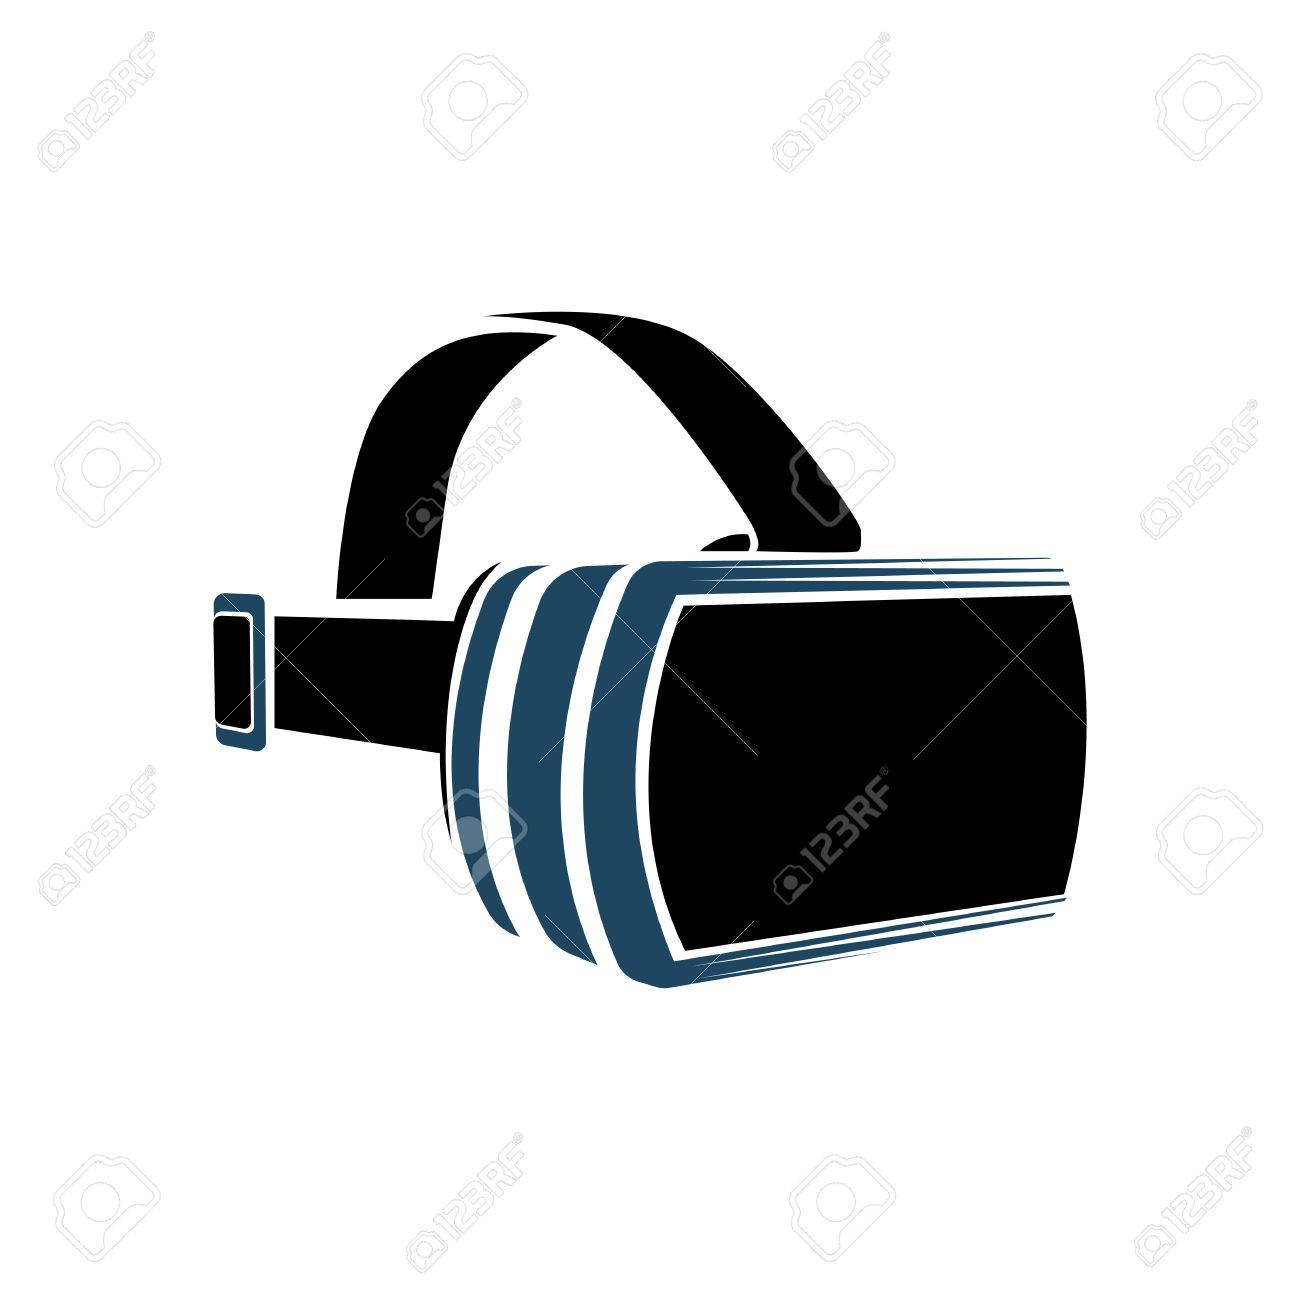 de4fdf9a371 Isolated vr headset logotype on white background. Black color virtual  reality helmet logo. Head